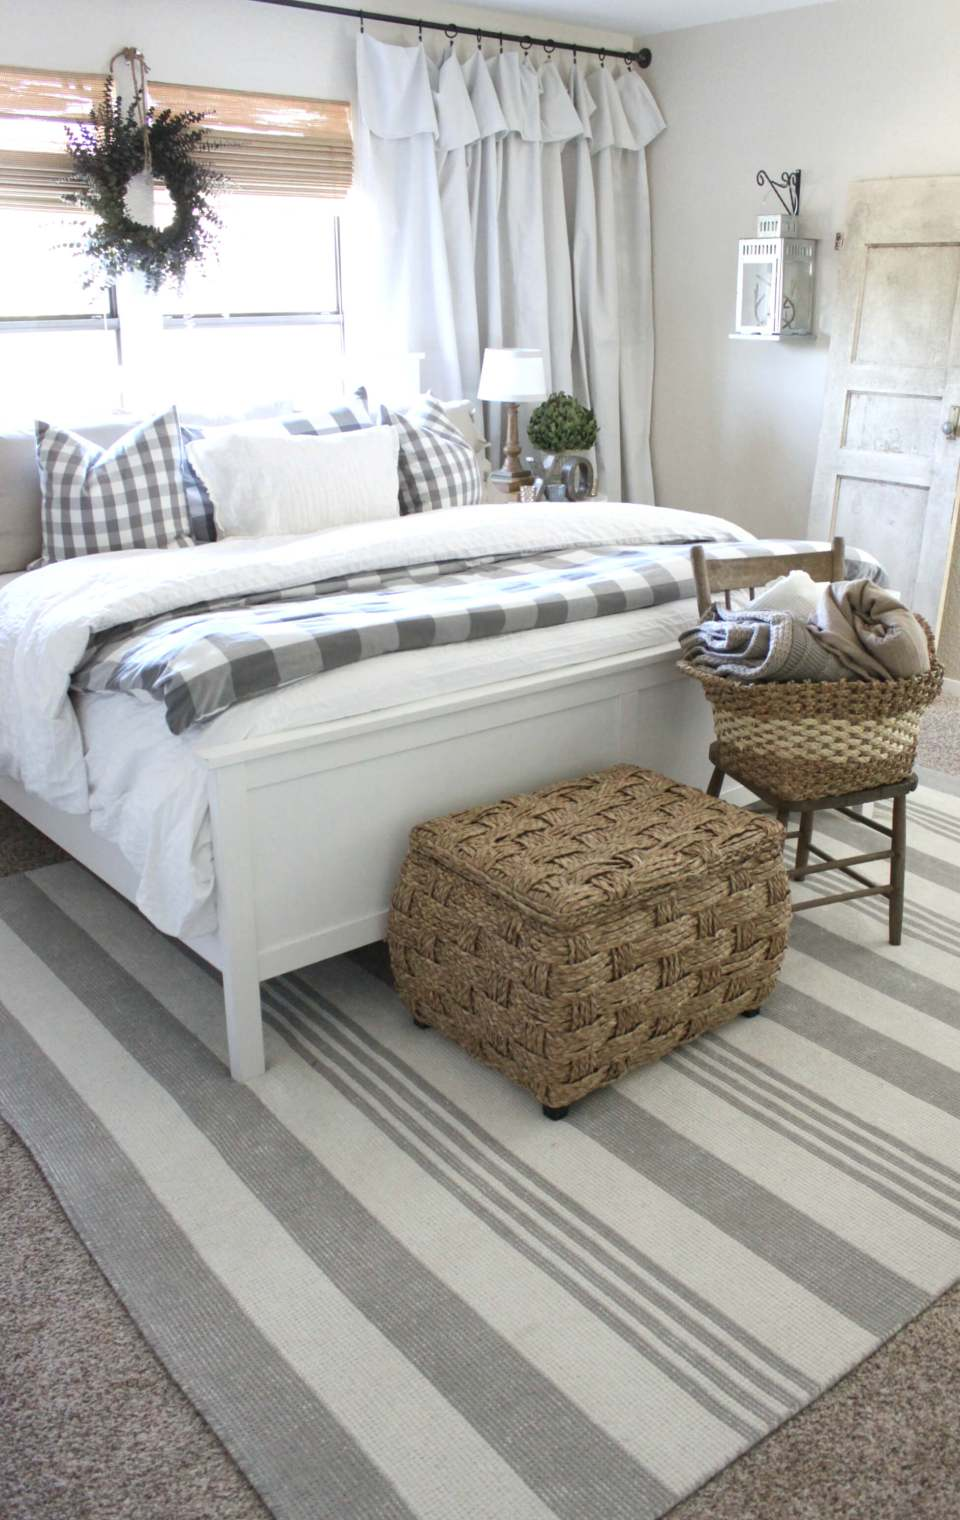 A white bed linens with a basket woven chest